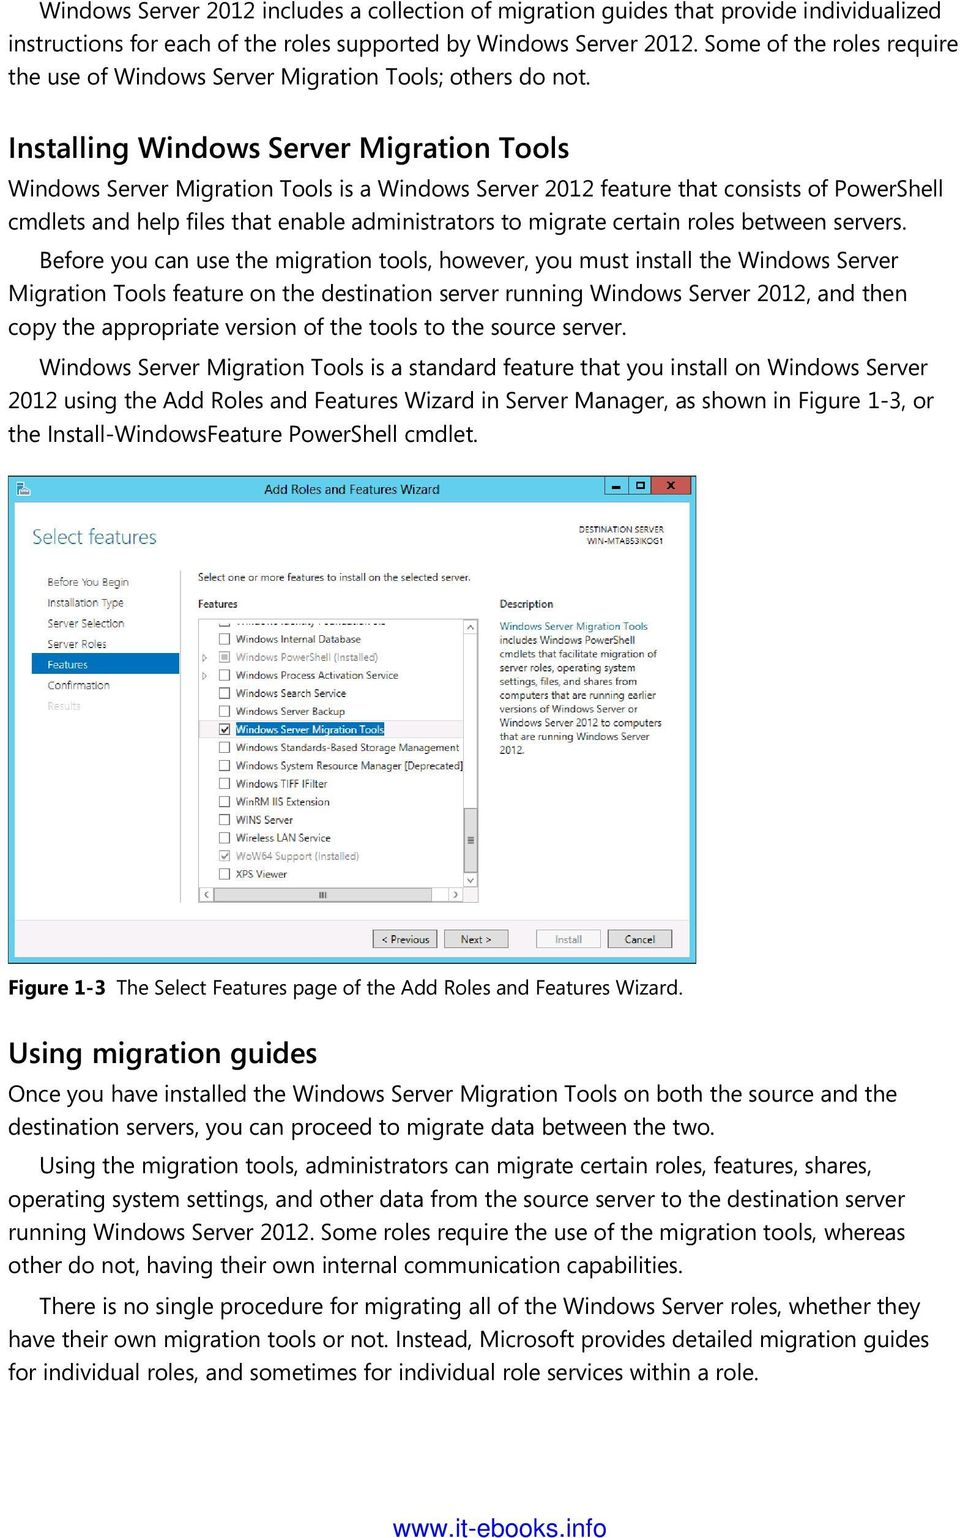 Installing Windows Server Migration Tools Windows Server Migration Tools is a Windows Server 2012 feature that consists of PowerShell cmdlets and help files that enable administrators to migrate